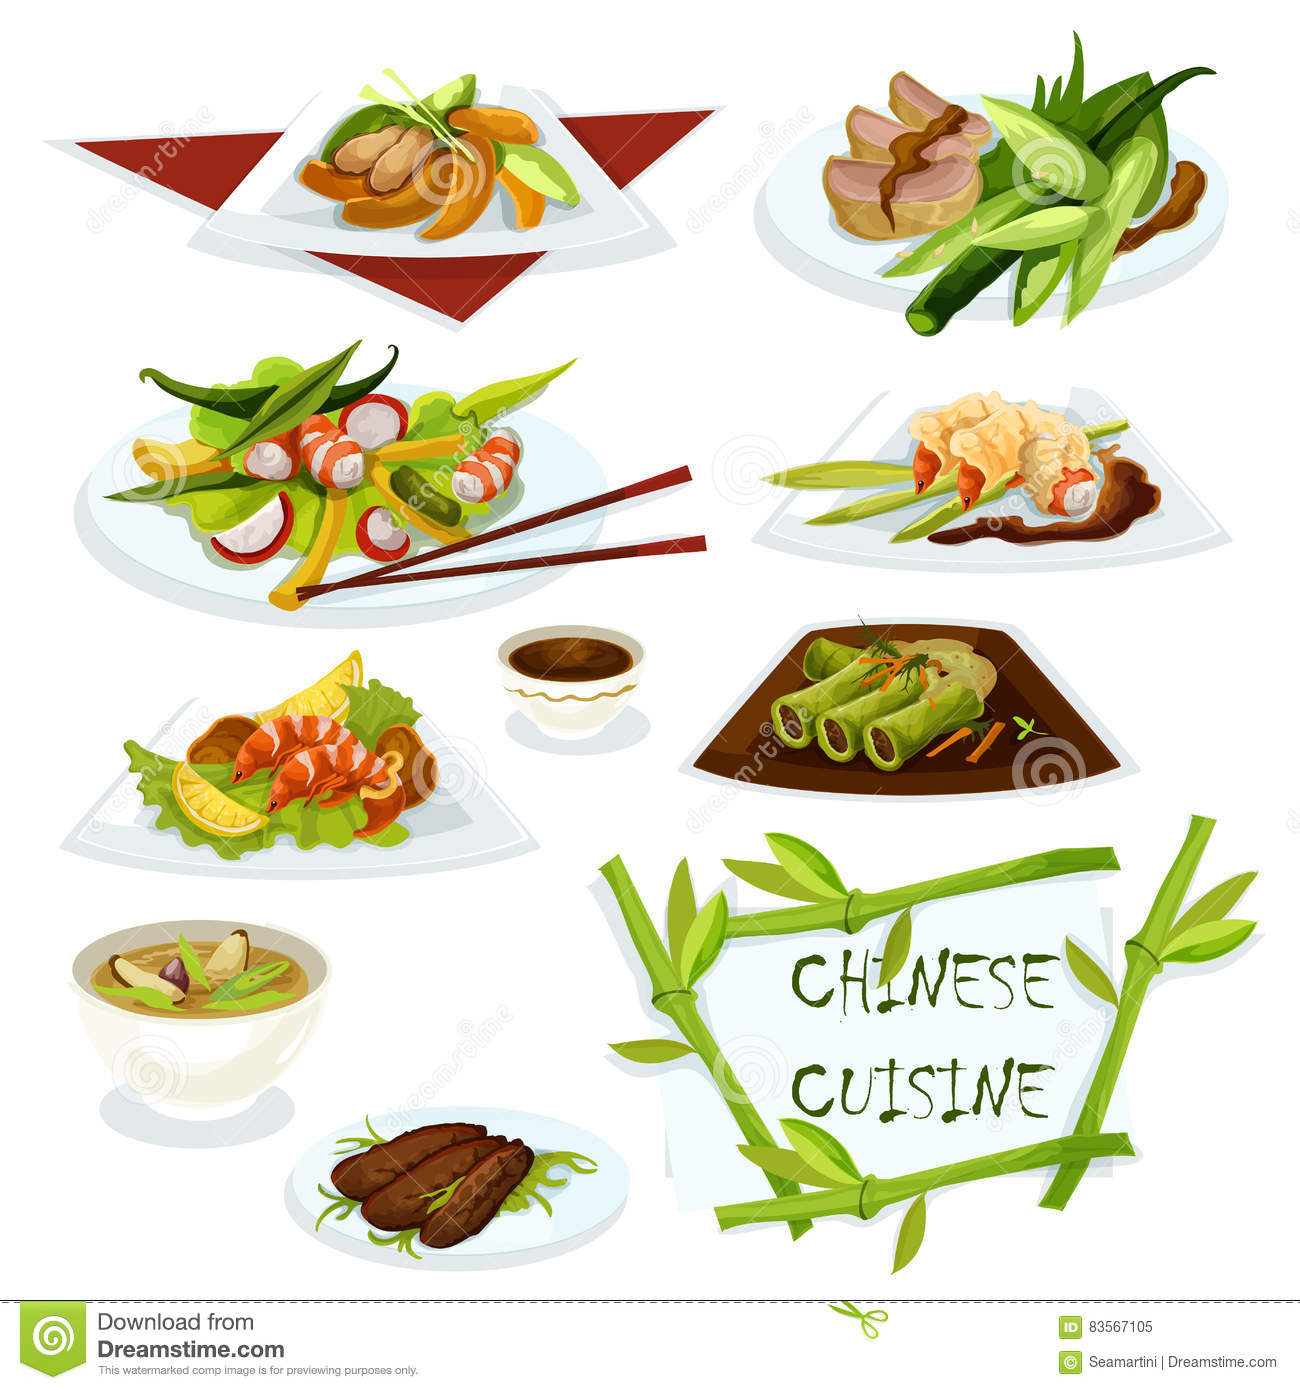 Chinese cuisine dishes for restaurant menu design stock for Artistic cuisine menu